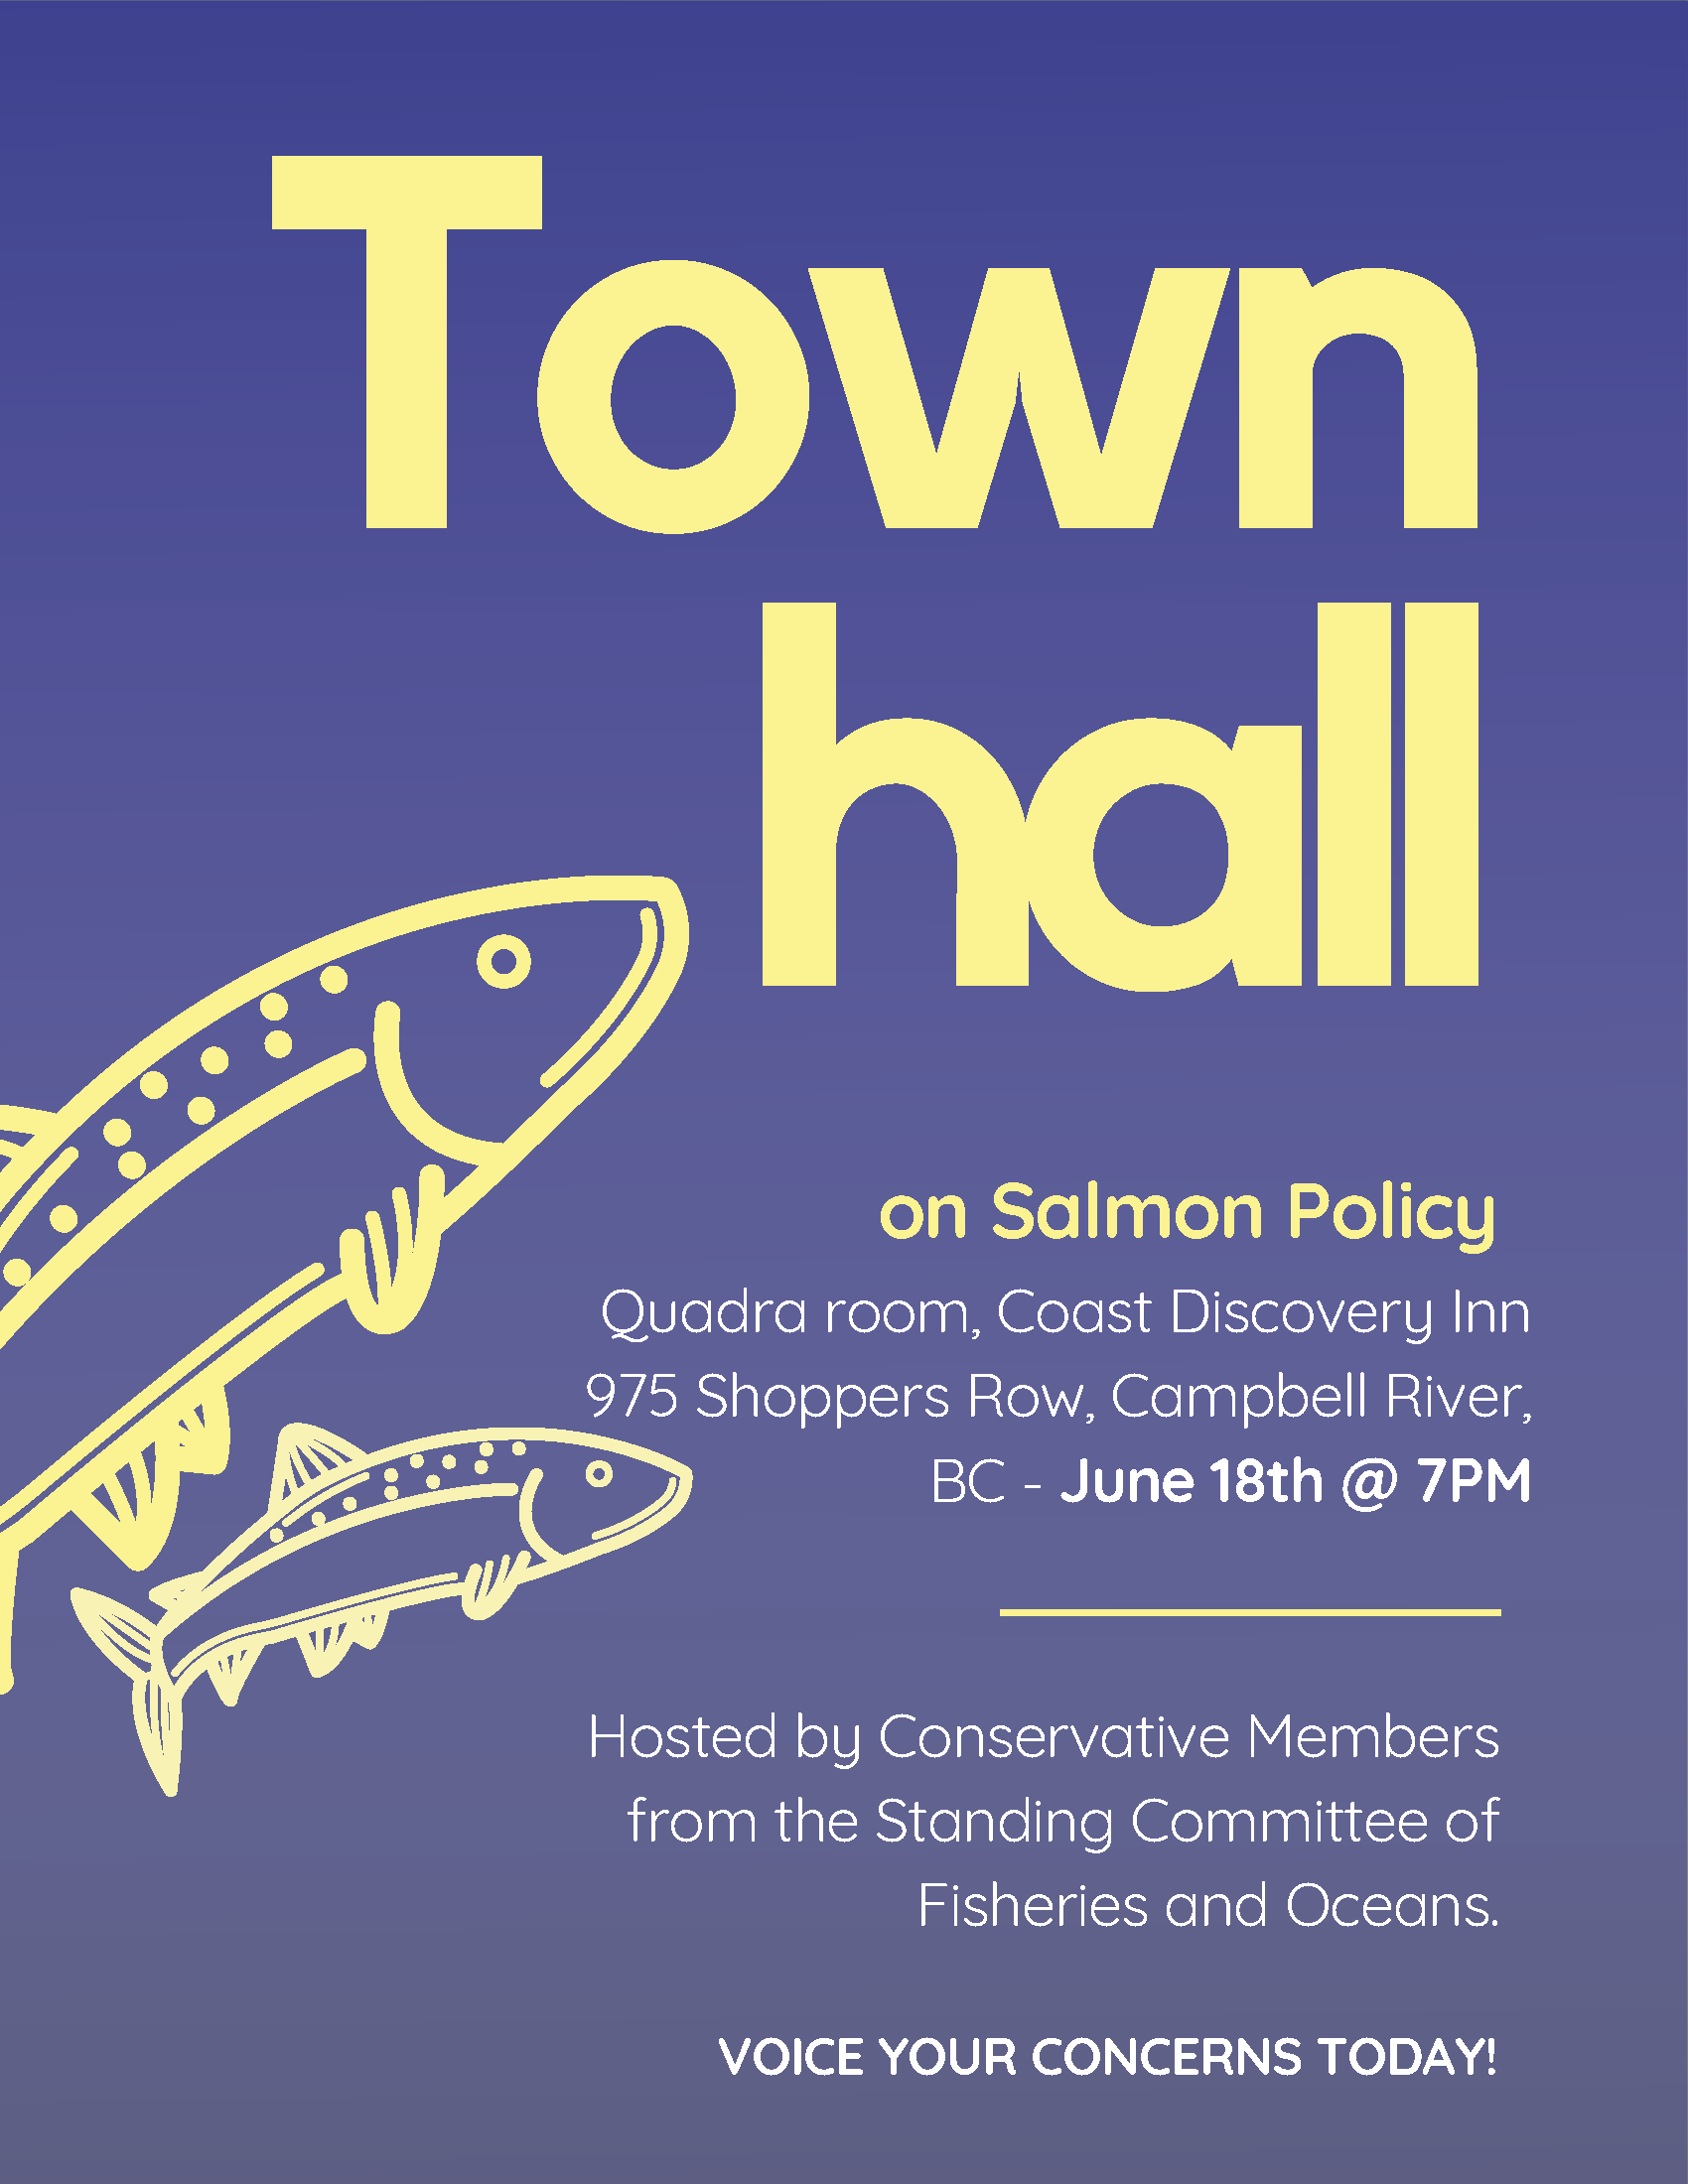 Salmon Policy Town Hall  Poster - Campbell River